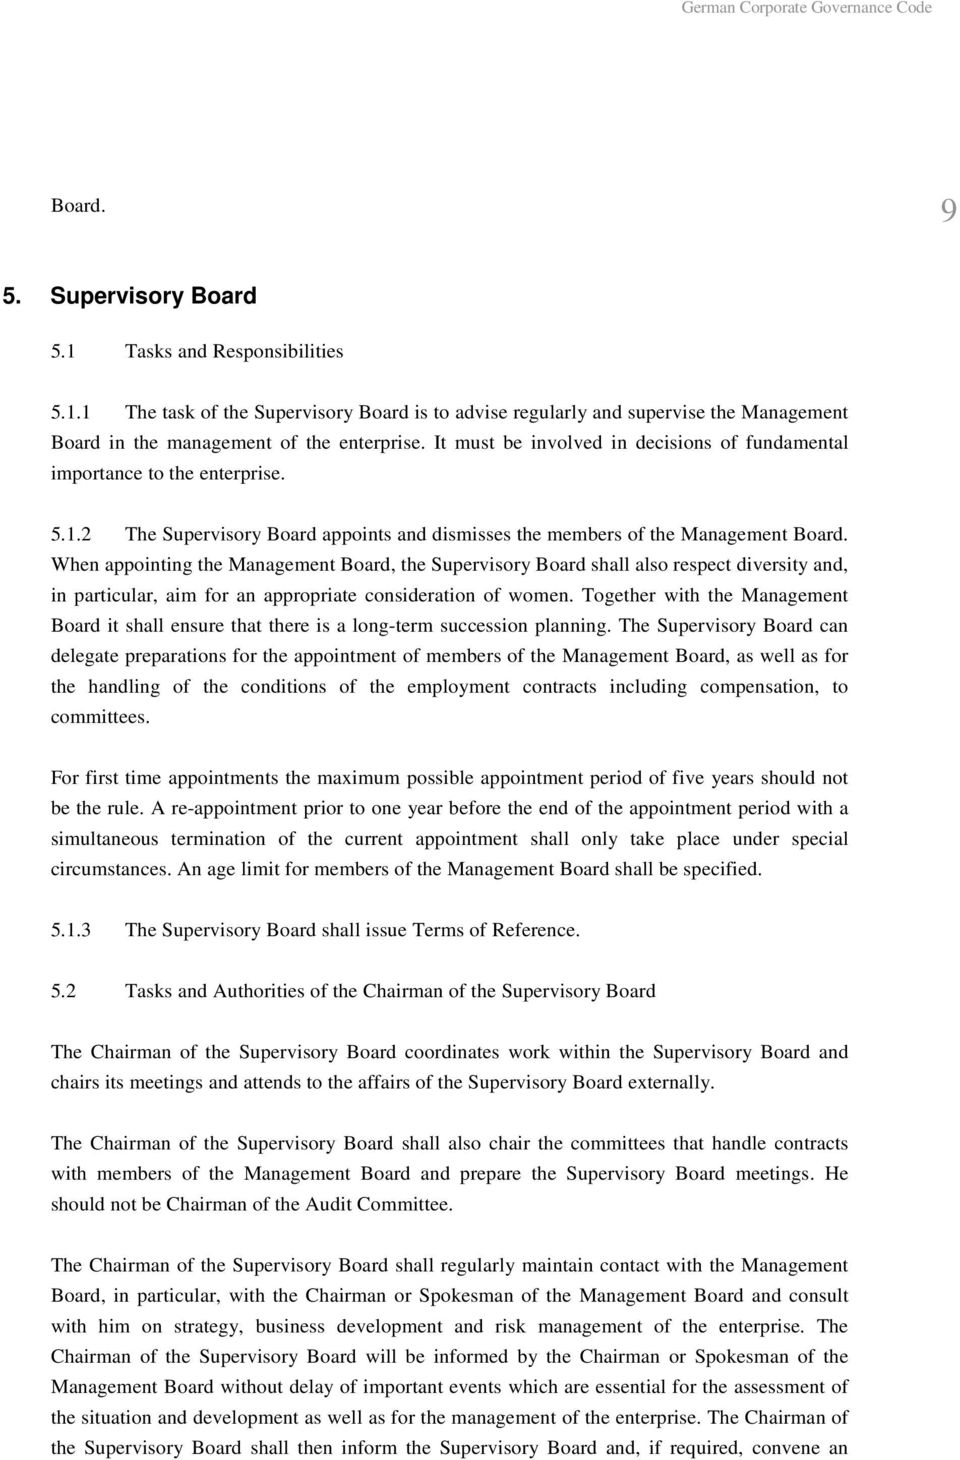 When appointing the Management Board, the Supervisory Board shall also respect diversity and, in particular, aim for an appropriate consideration of women.